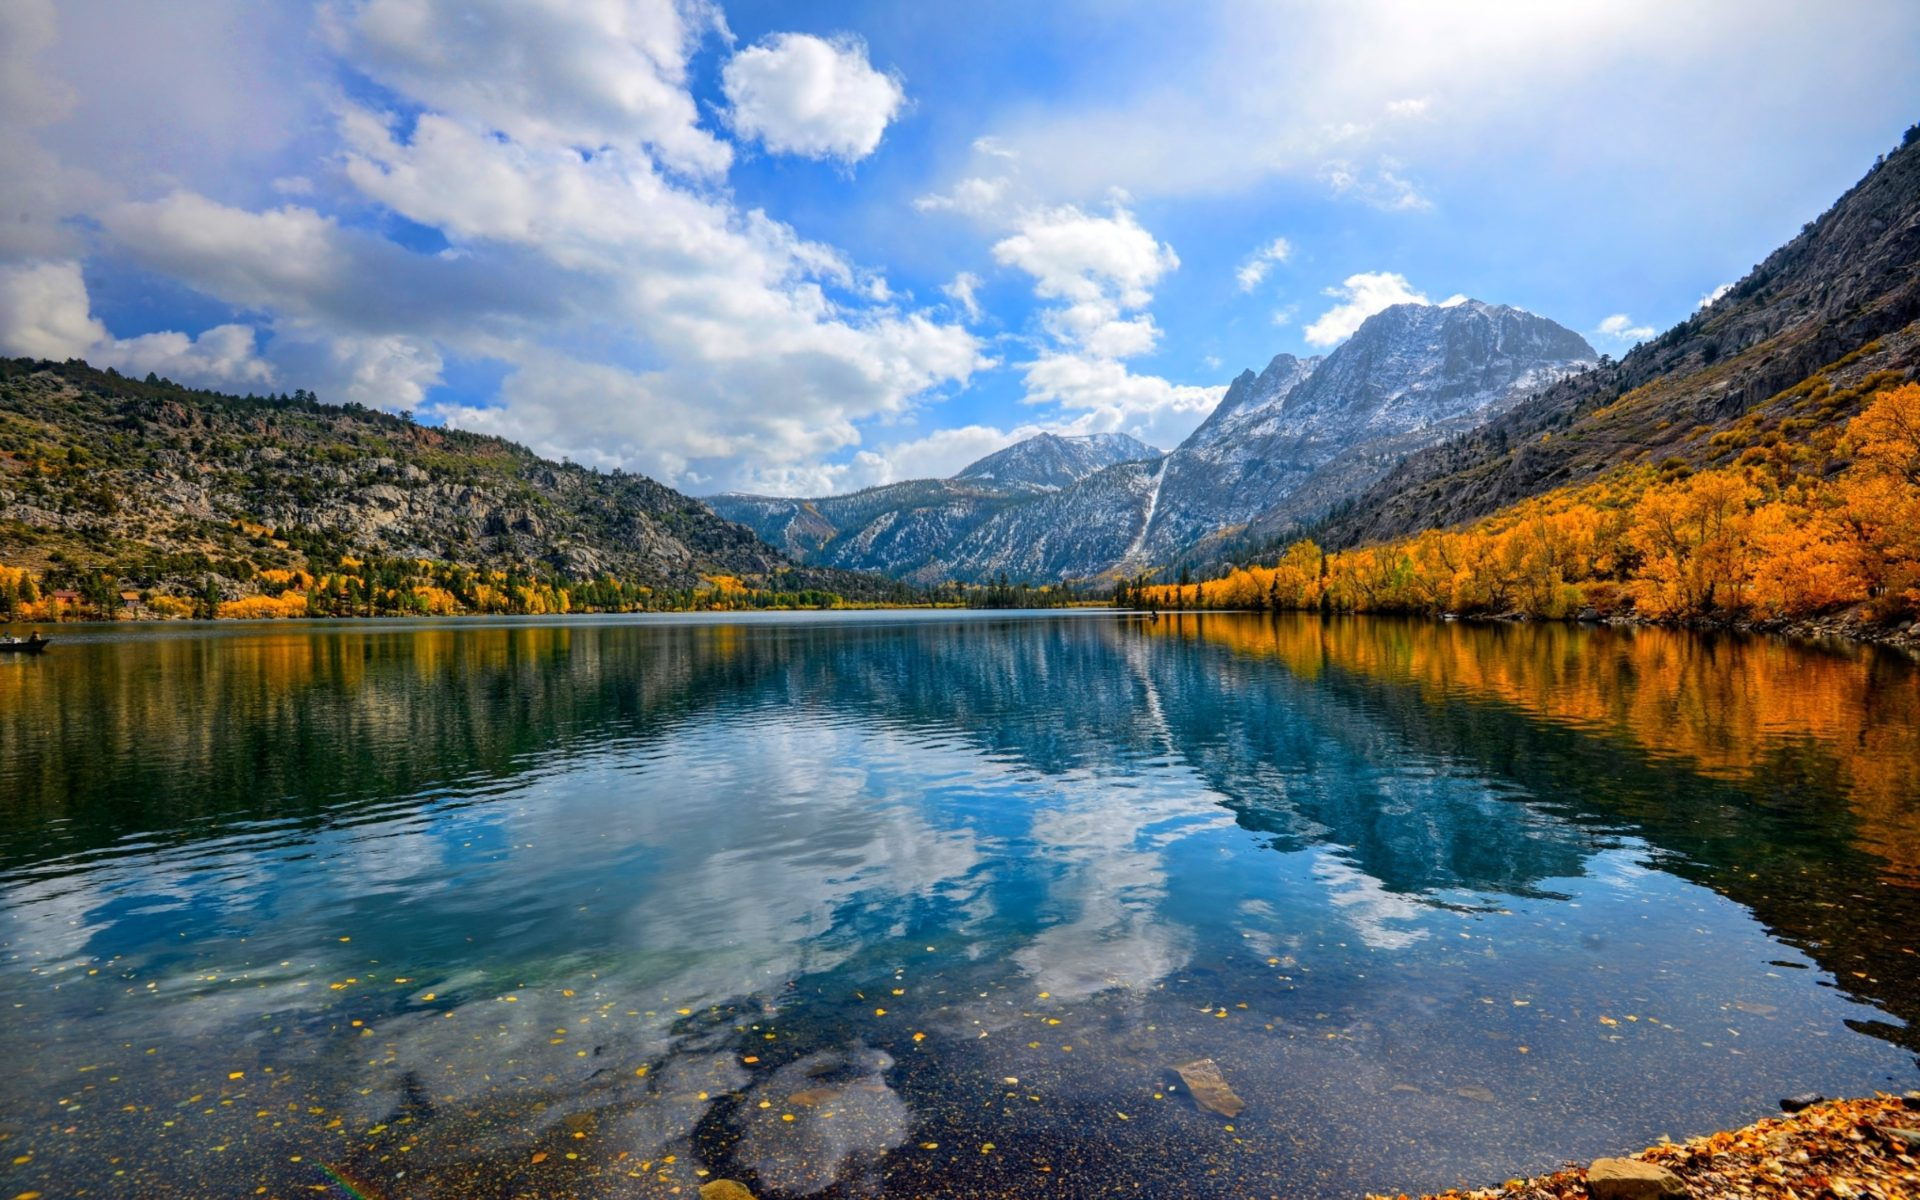 Windows 10 Wallpapers Hd Fall Autumn Lake Reflections Wallpapers13 Com